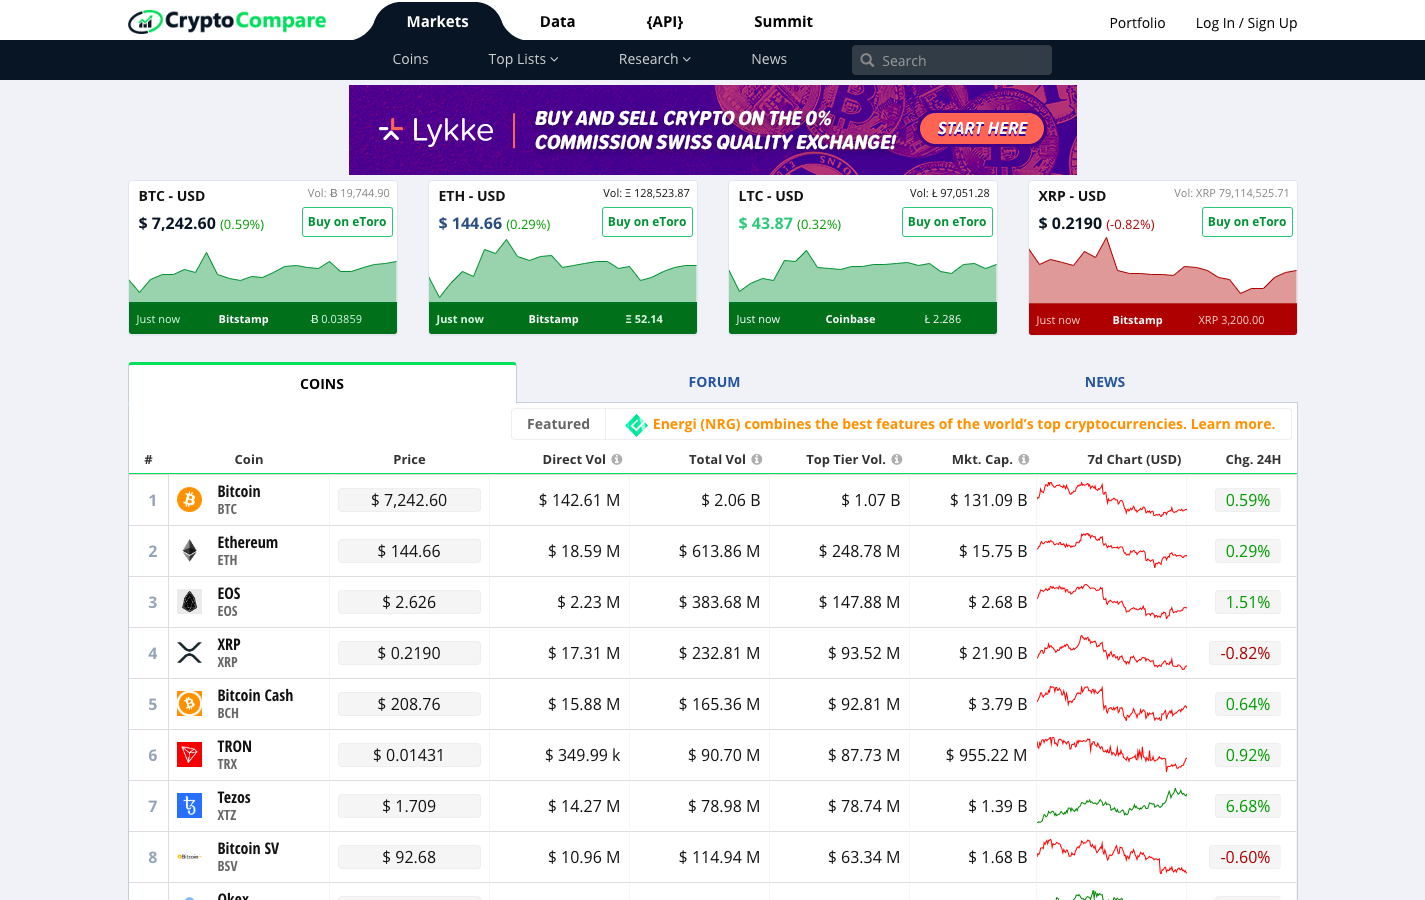 CryptoCompare as a competitive crypto website